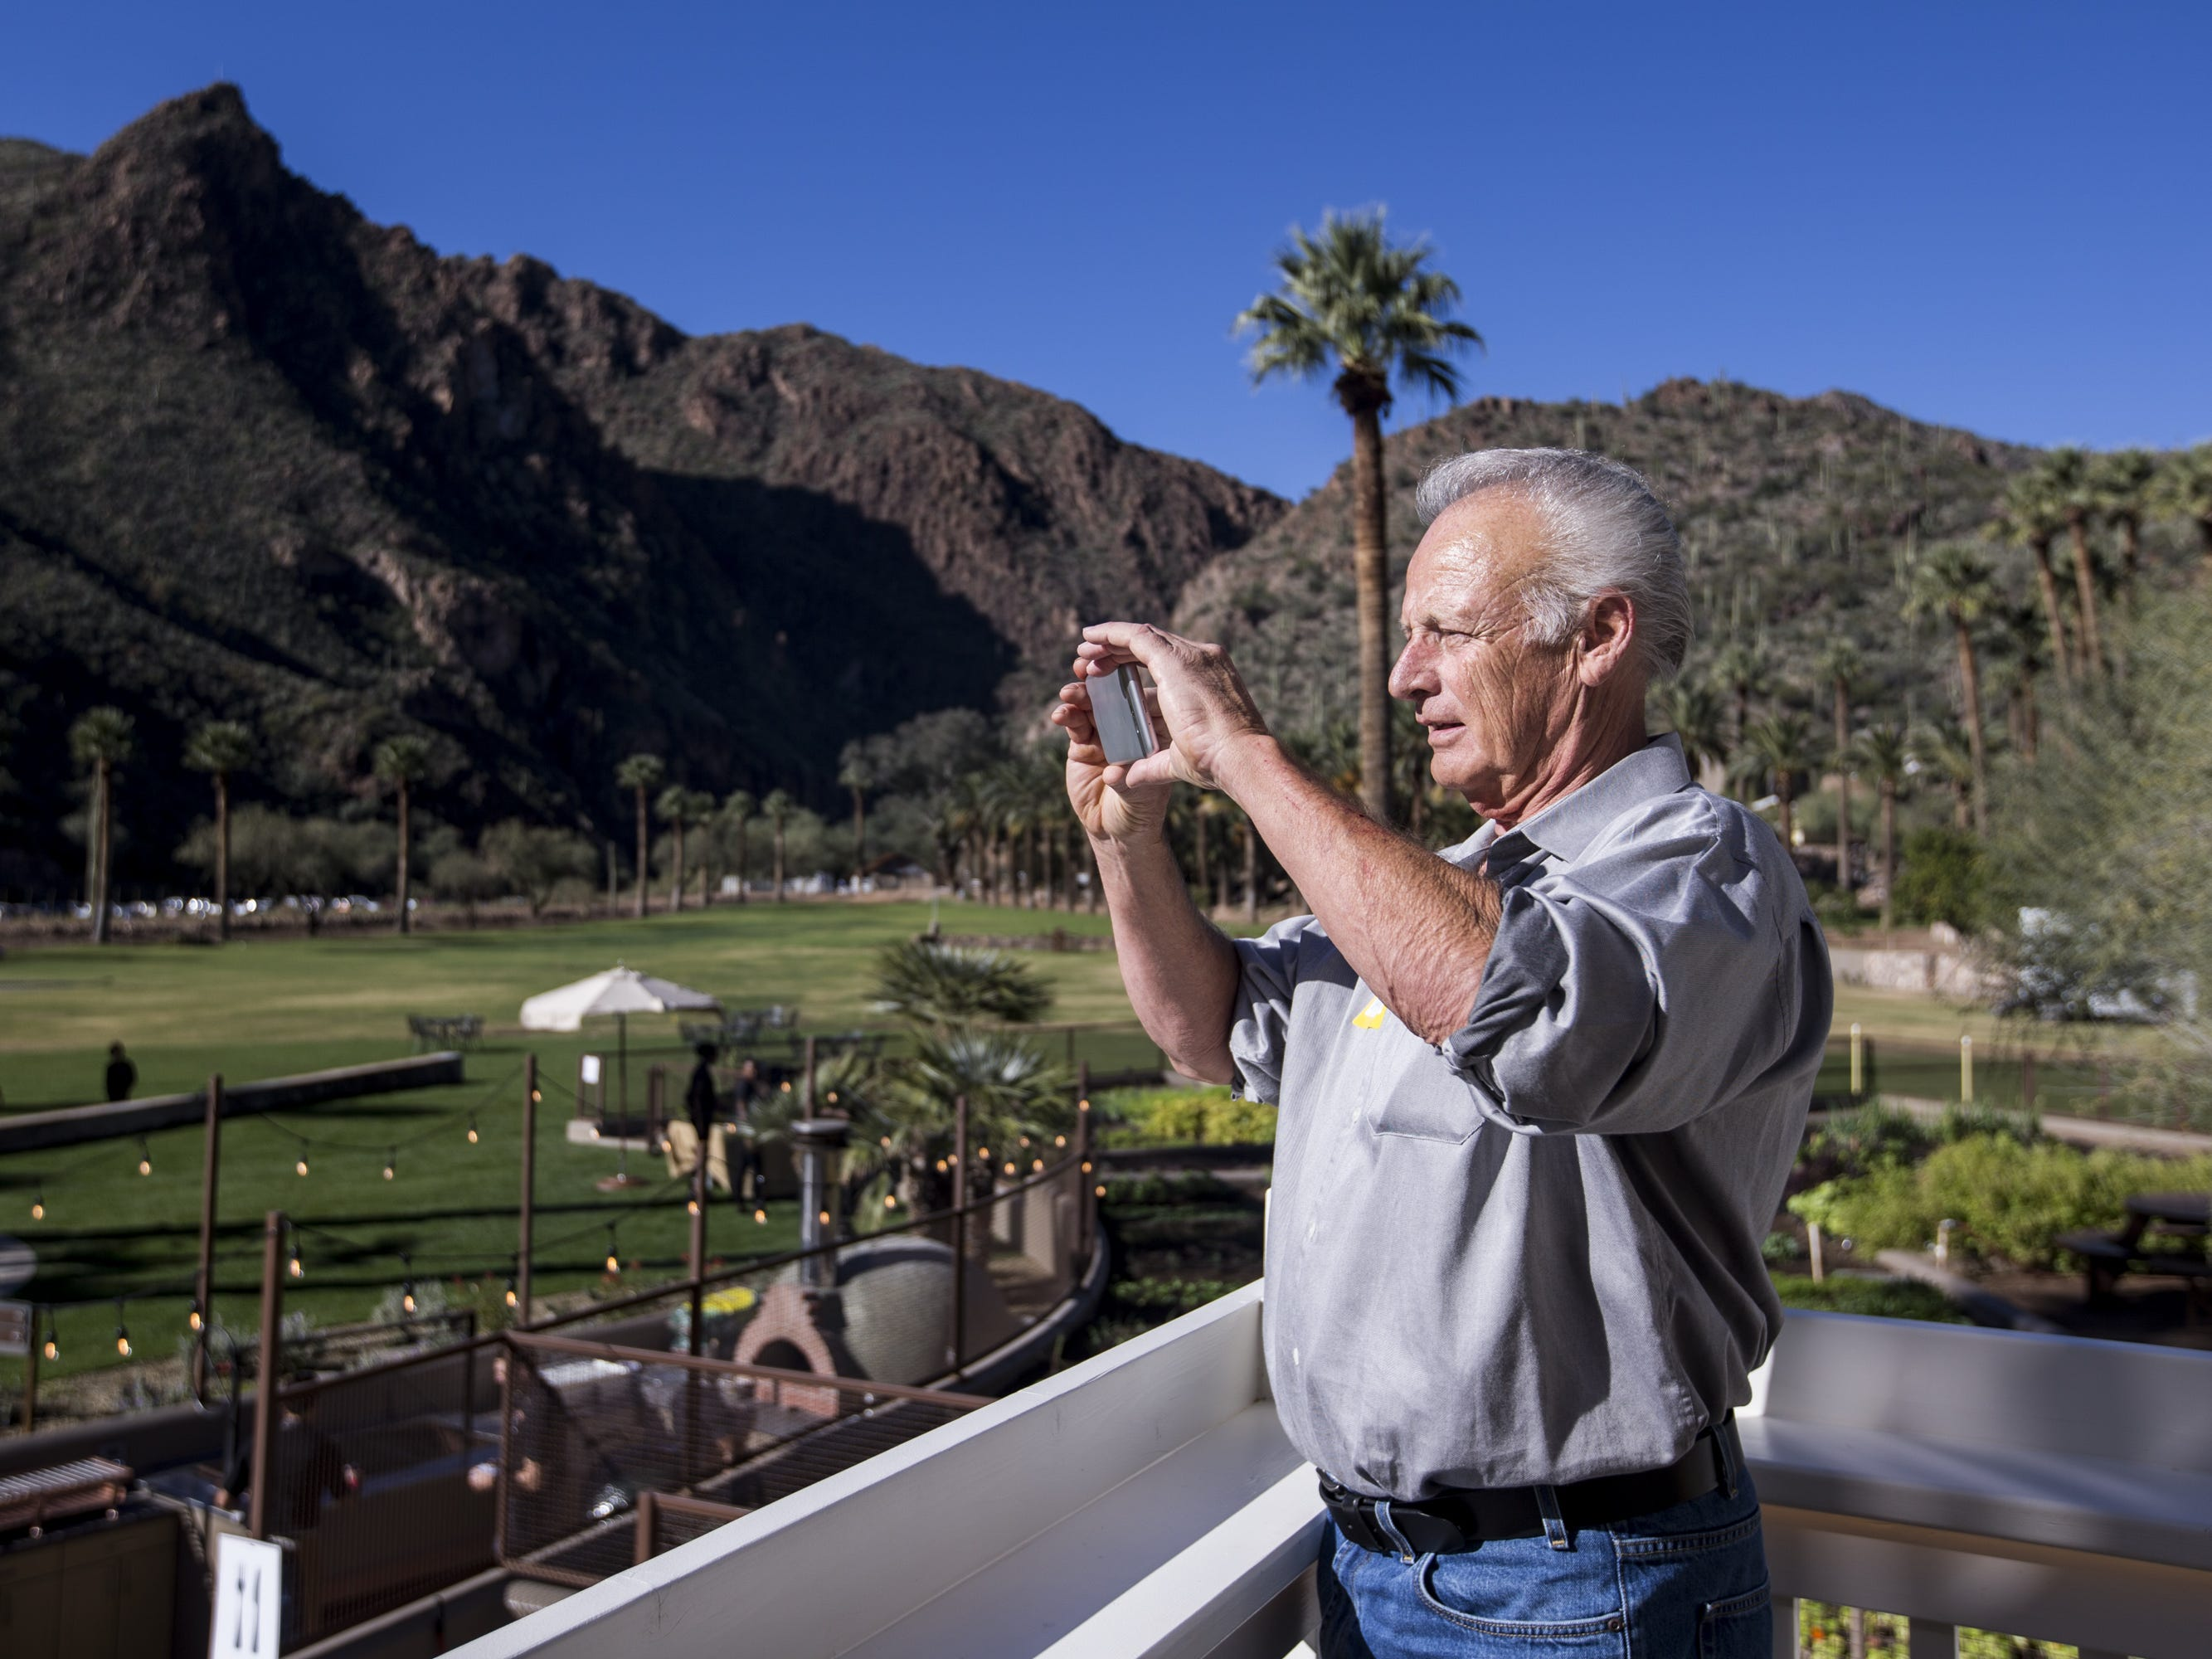 Garry Thorn takes photos of the newly renovated Castle Hot Springs resort is pictured on Saturday, Dec. 8, 2018, in Morristown, Ariz. It has been 50 years since the resort has hosted any guests.